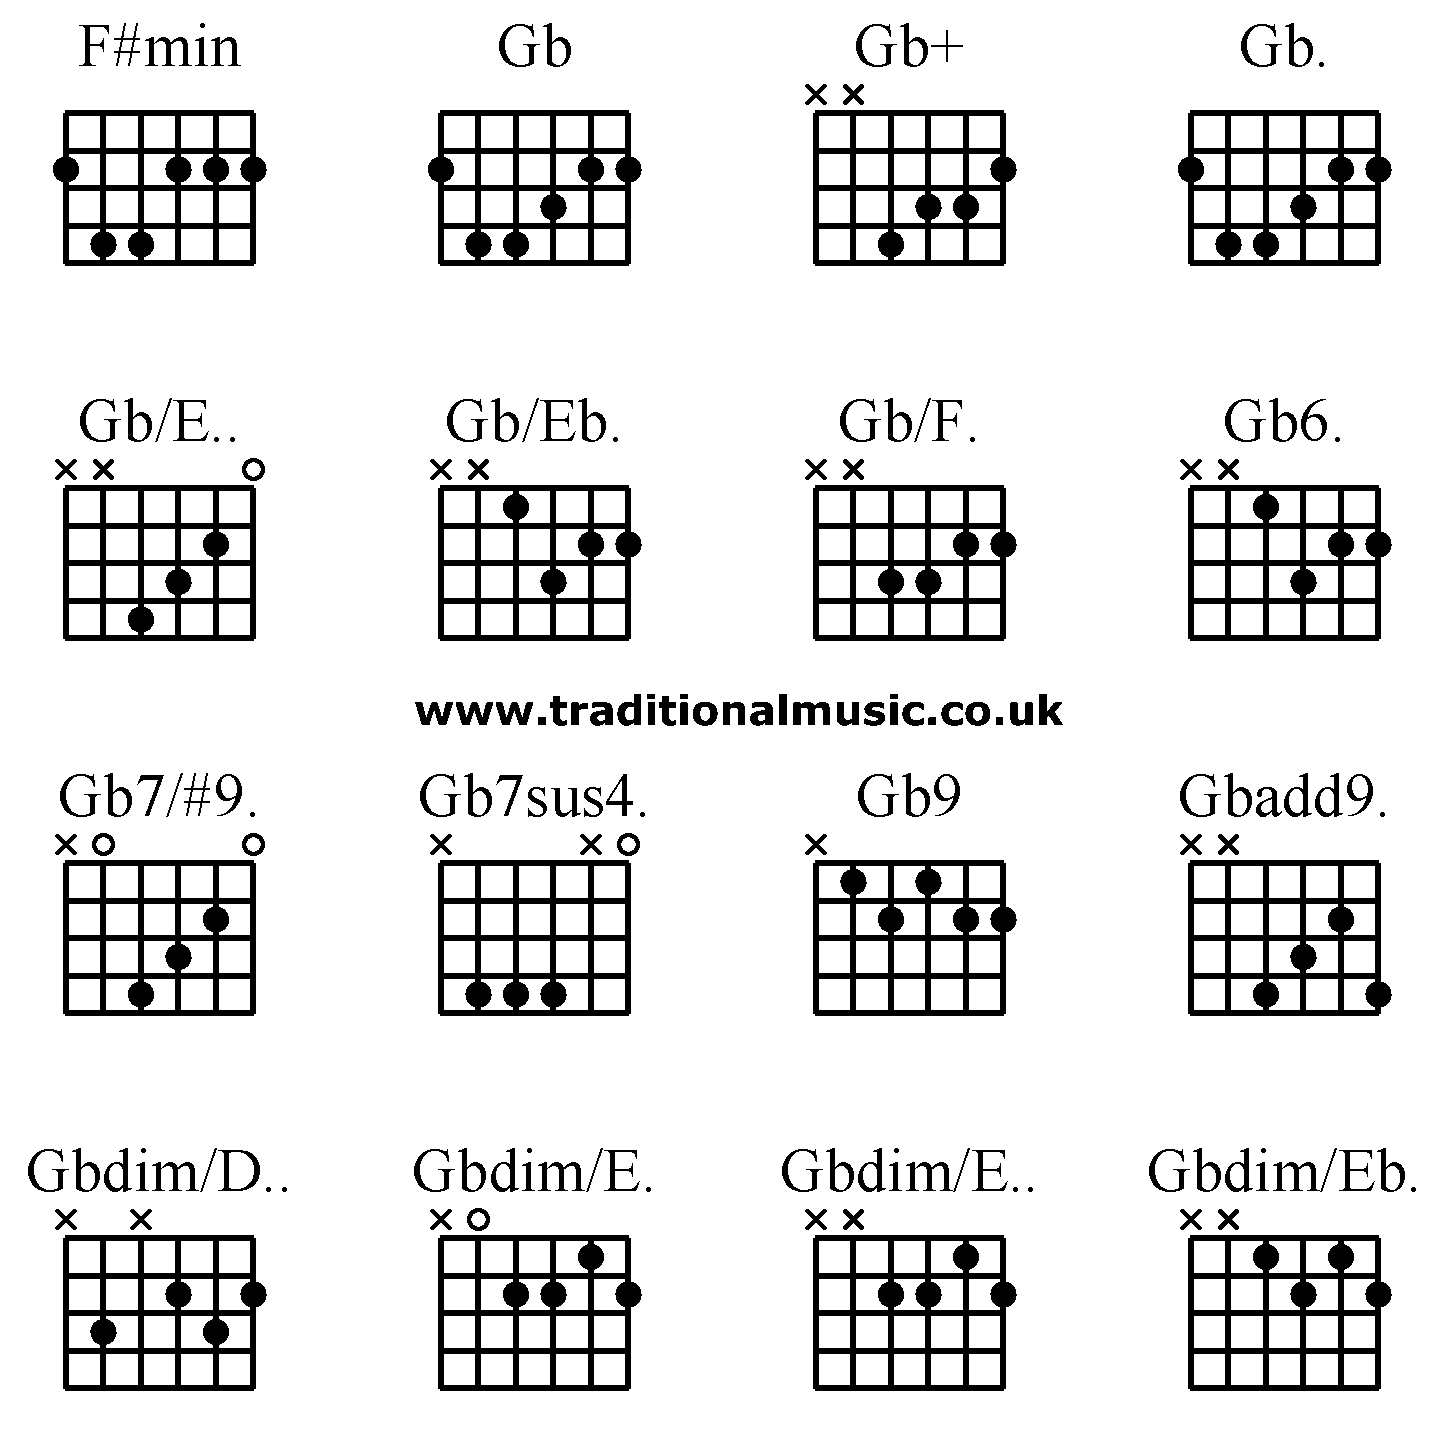 Guitar chords advanced -F#min Gb Gb+ Gb. Gb/E. Gb/Eb. Gb/F. Gb6. Gb7/#9. Gb7sus4. Gb9 Gbadd9 ...